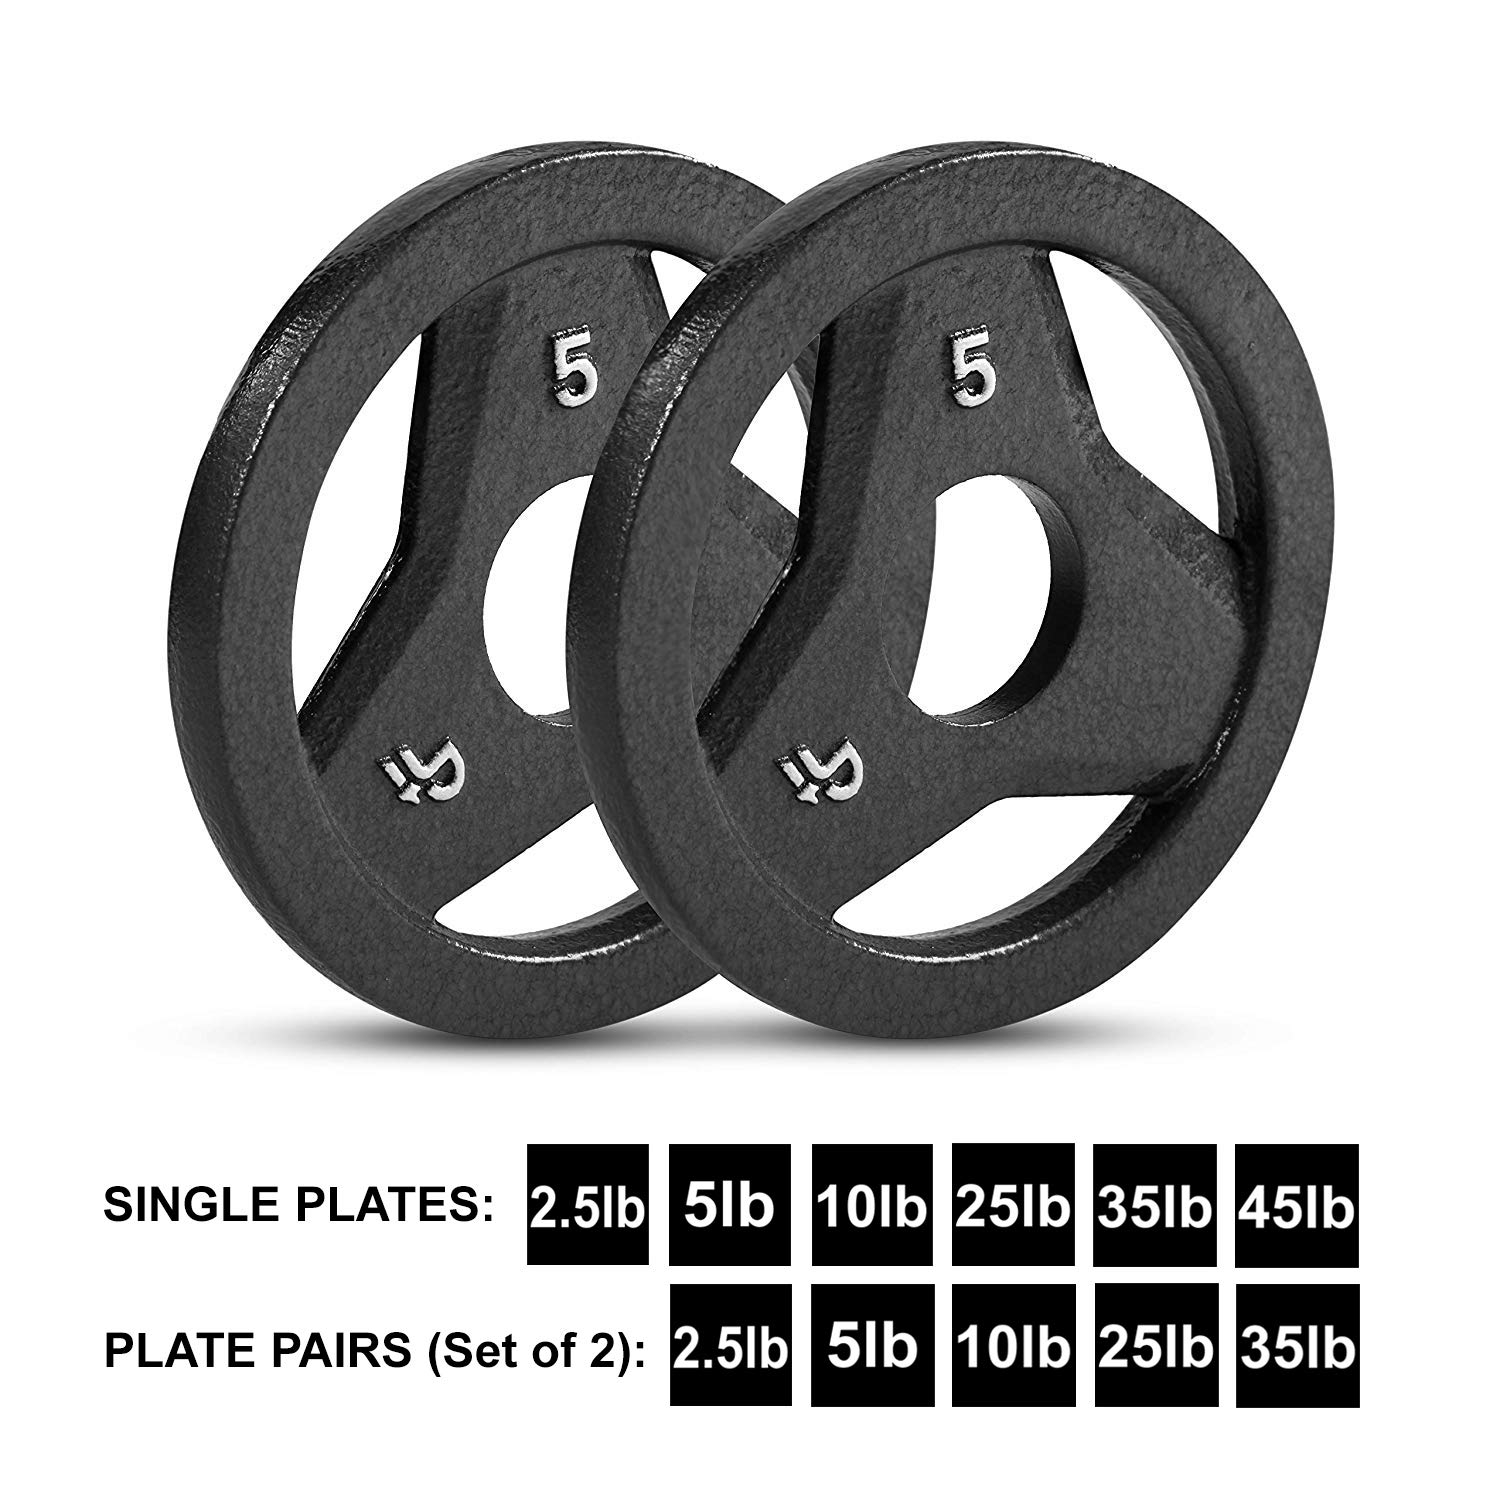 "Day 1 Fitness Cast Iron Olympic 2-Inch Grip Plate for Barbell, 5 Pound Set of 2 Plates Iron Grip Plates for Weightlifting, Crossfit - 2"" Weight Plate for Bodybuilding by Day 1 Fitness (Image #1)"